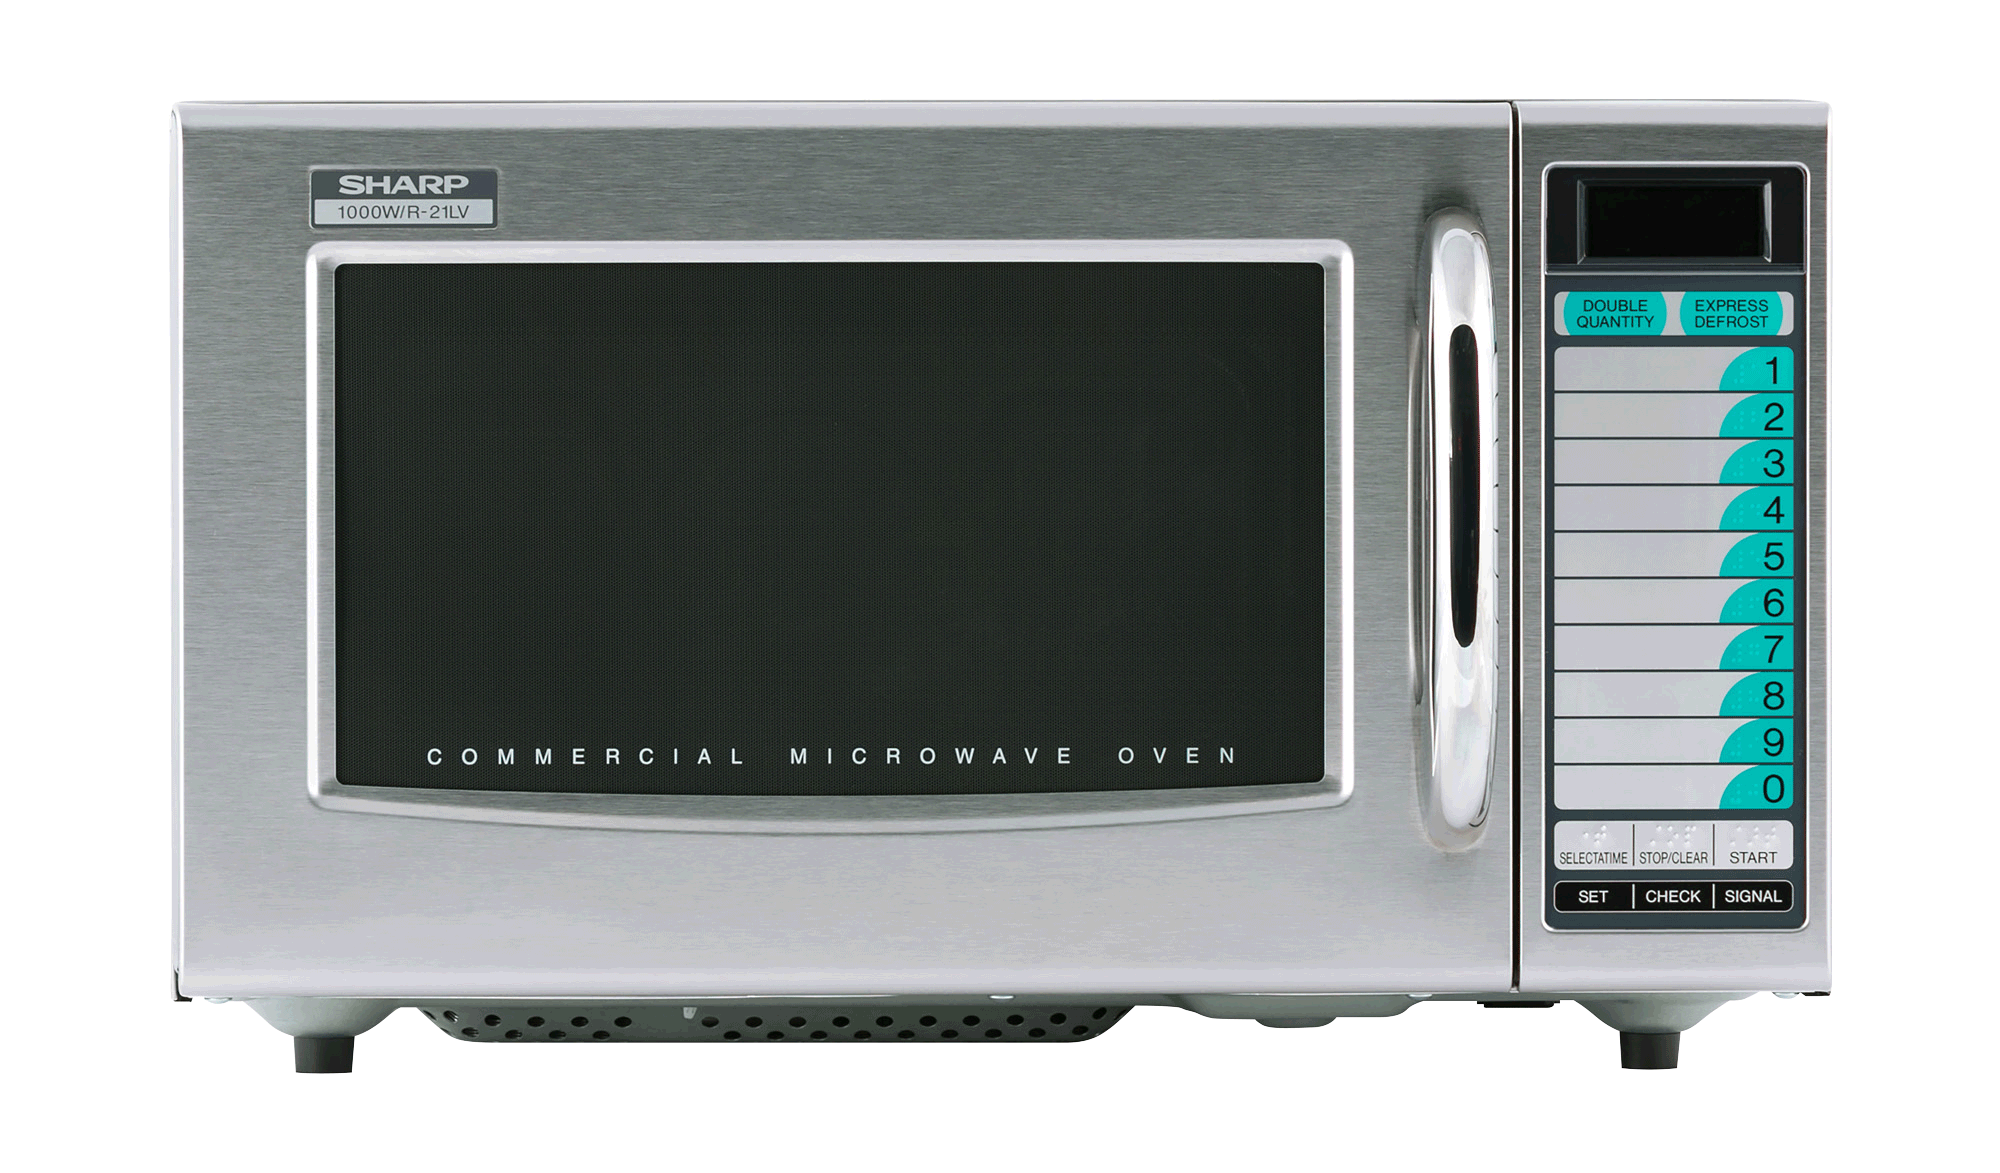 Air Ion R-21lvf | Commercial Microwave | Commercial Appliances | Sharp